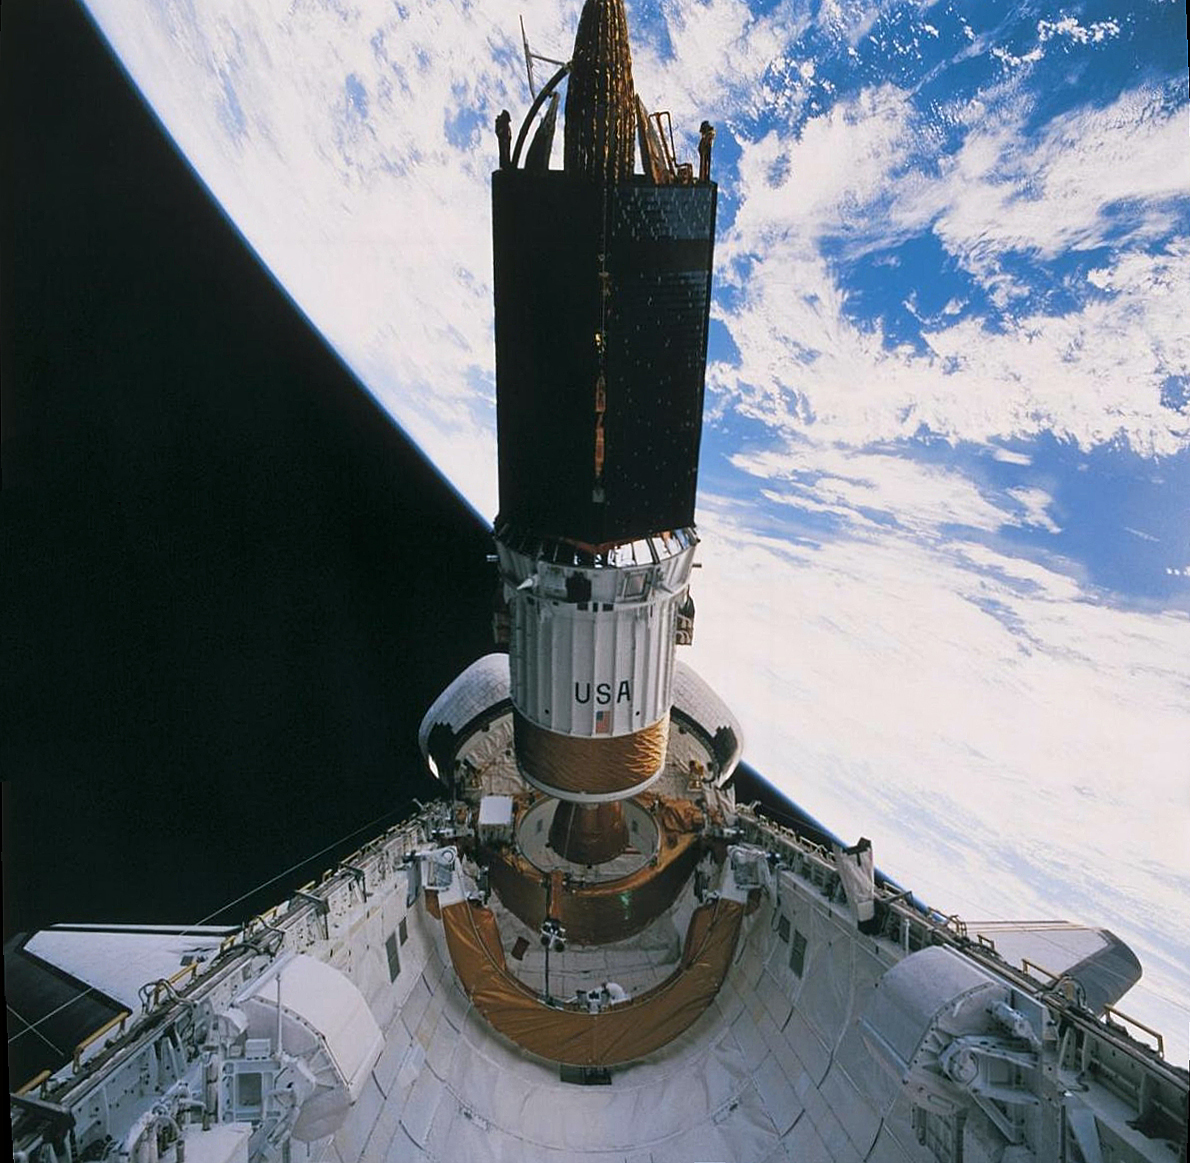 Sts 54